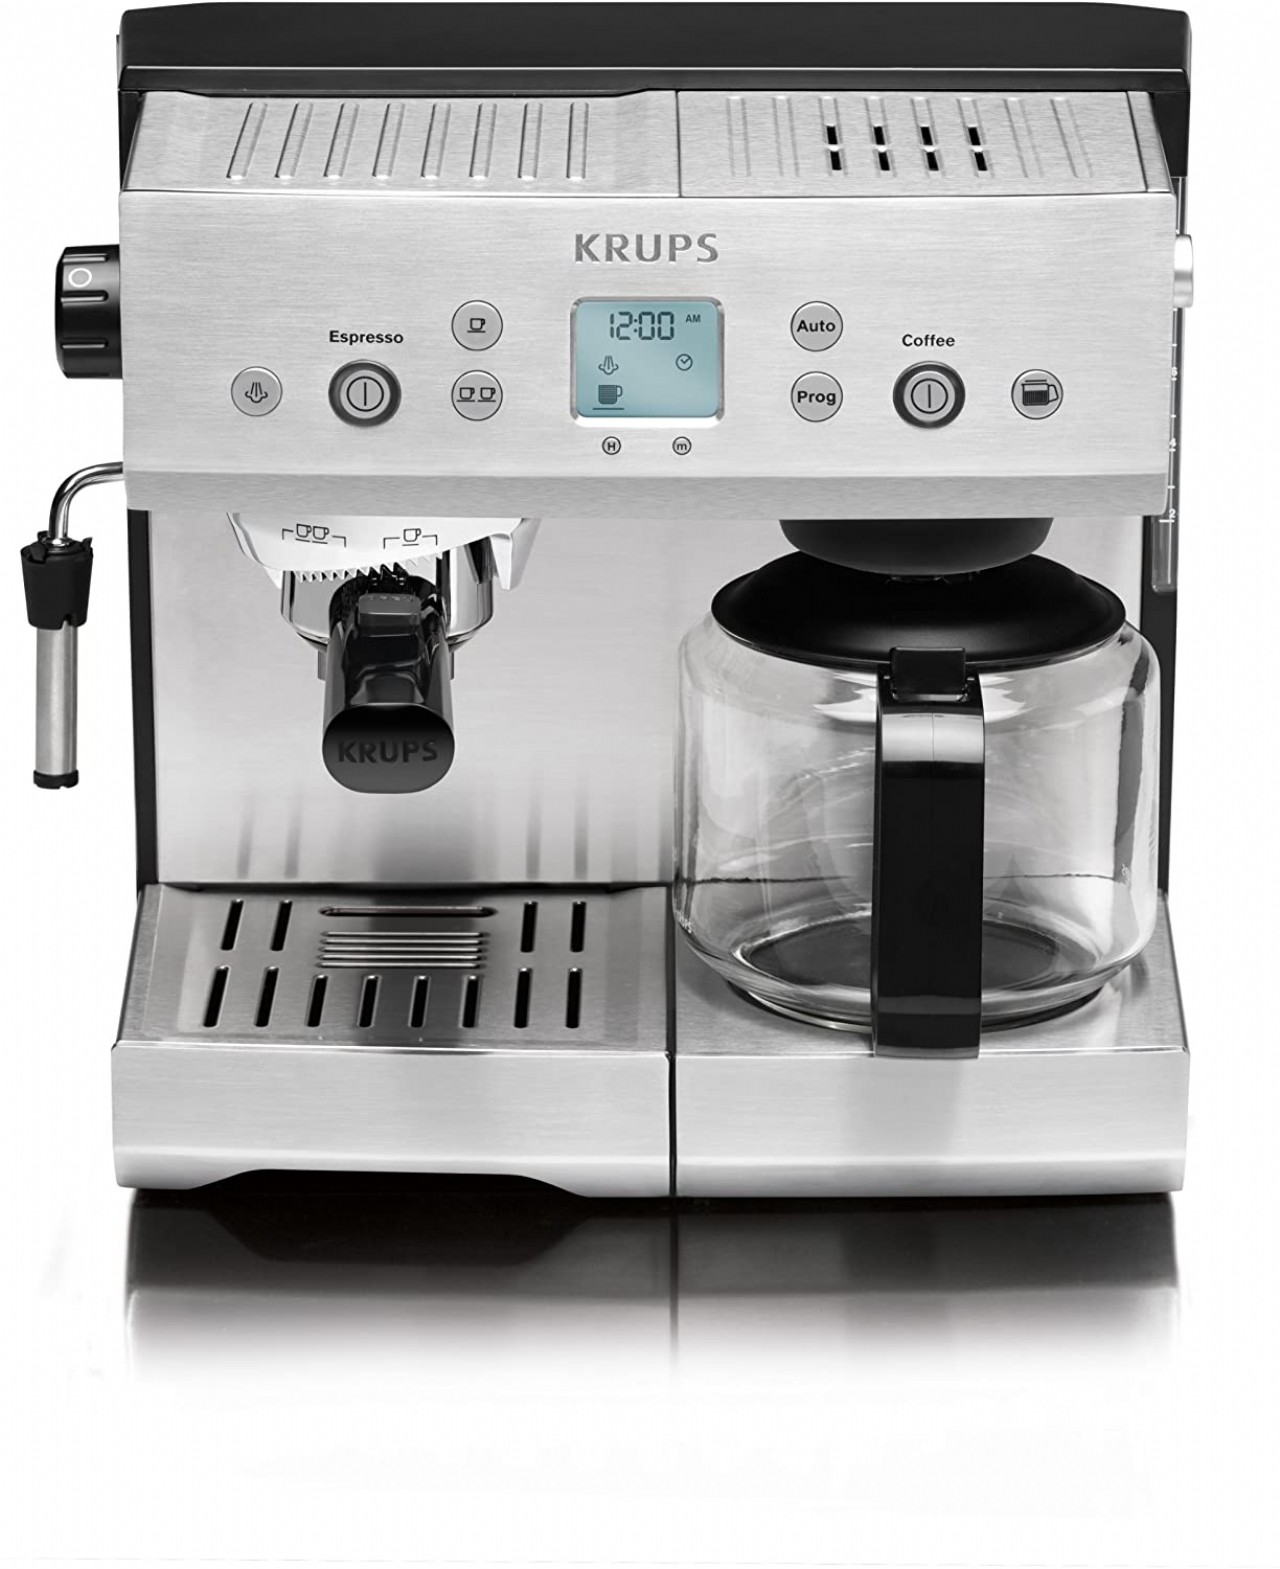 KRUPS XP2280 Espresso Machine and Coffee Maker Combination with KRUPS Precise Tamp Technology